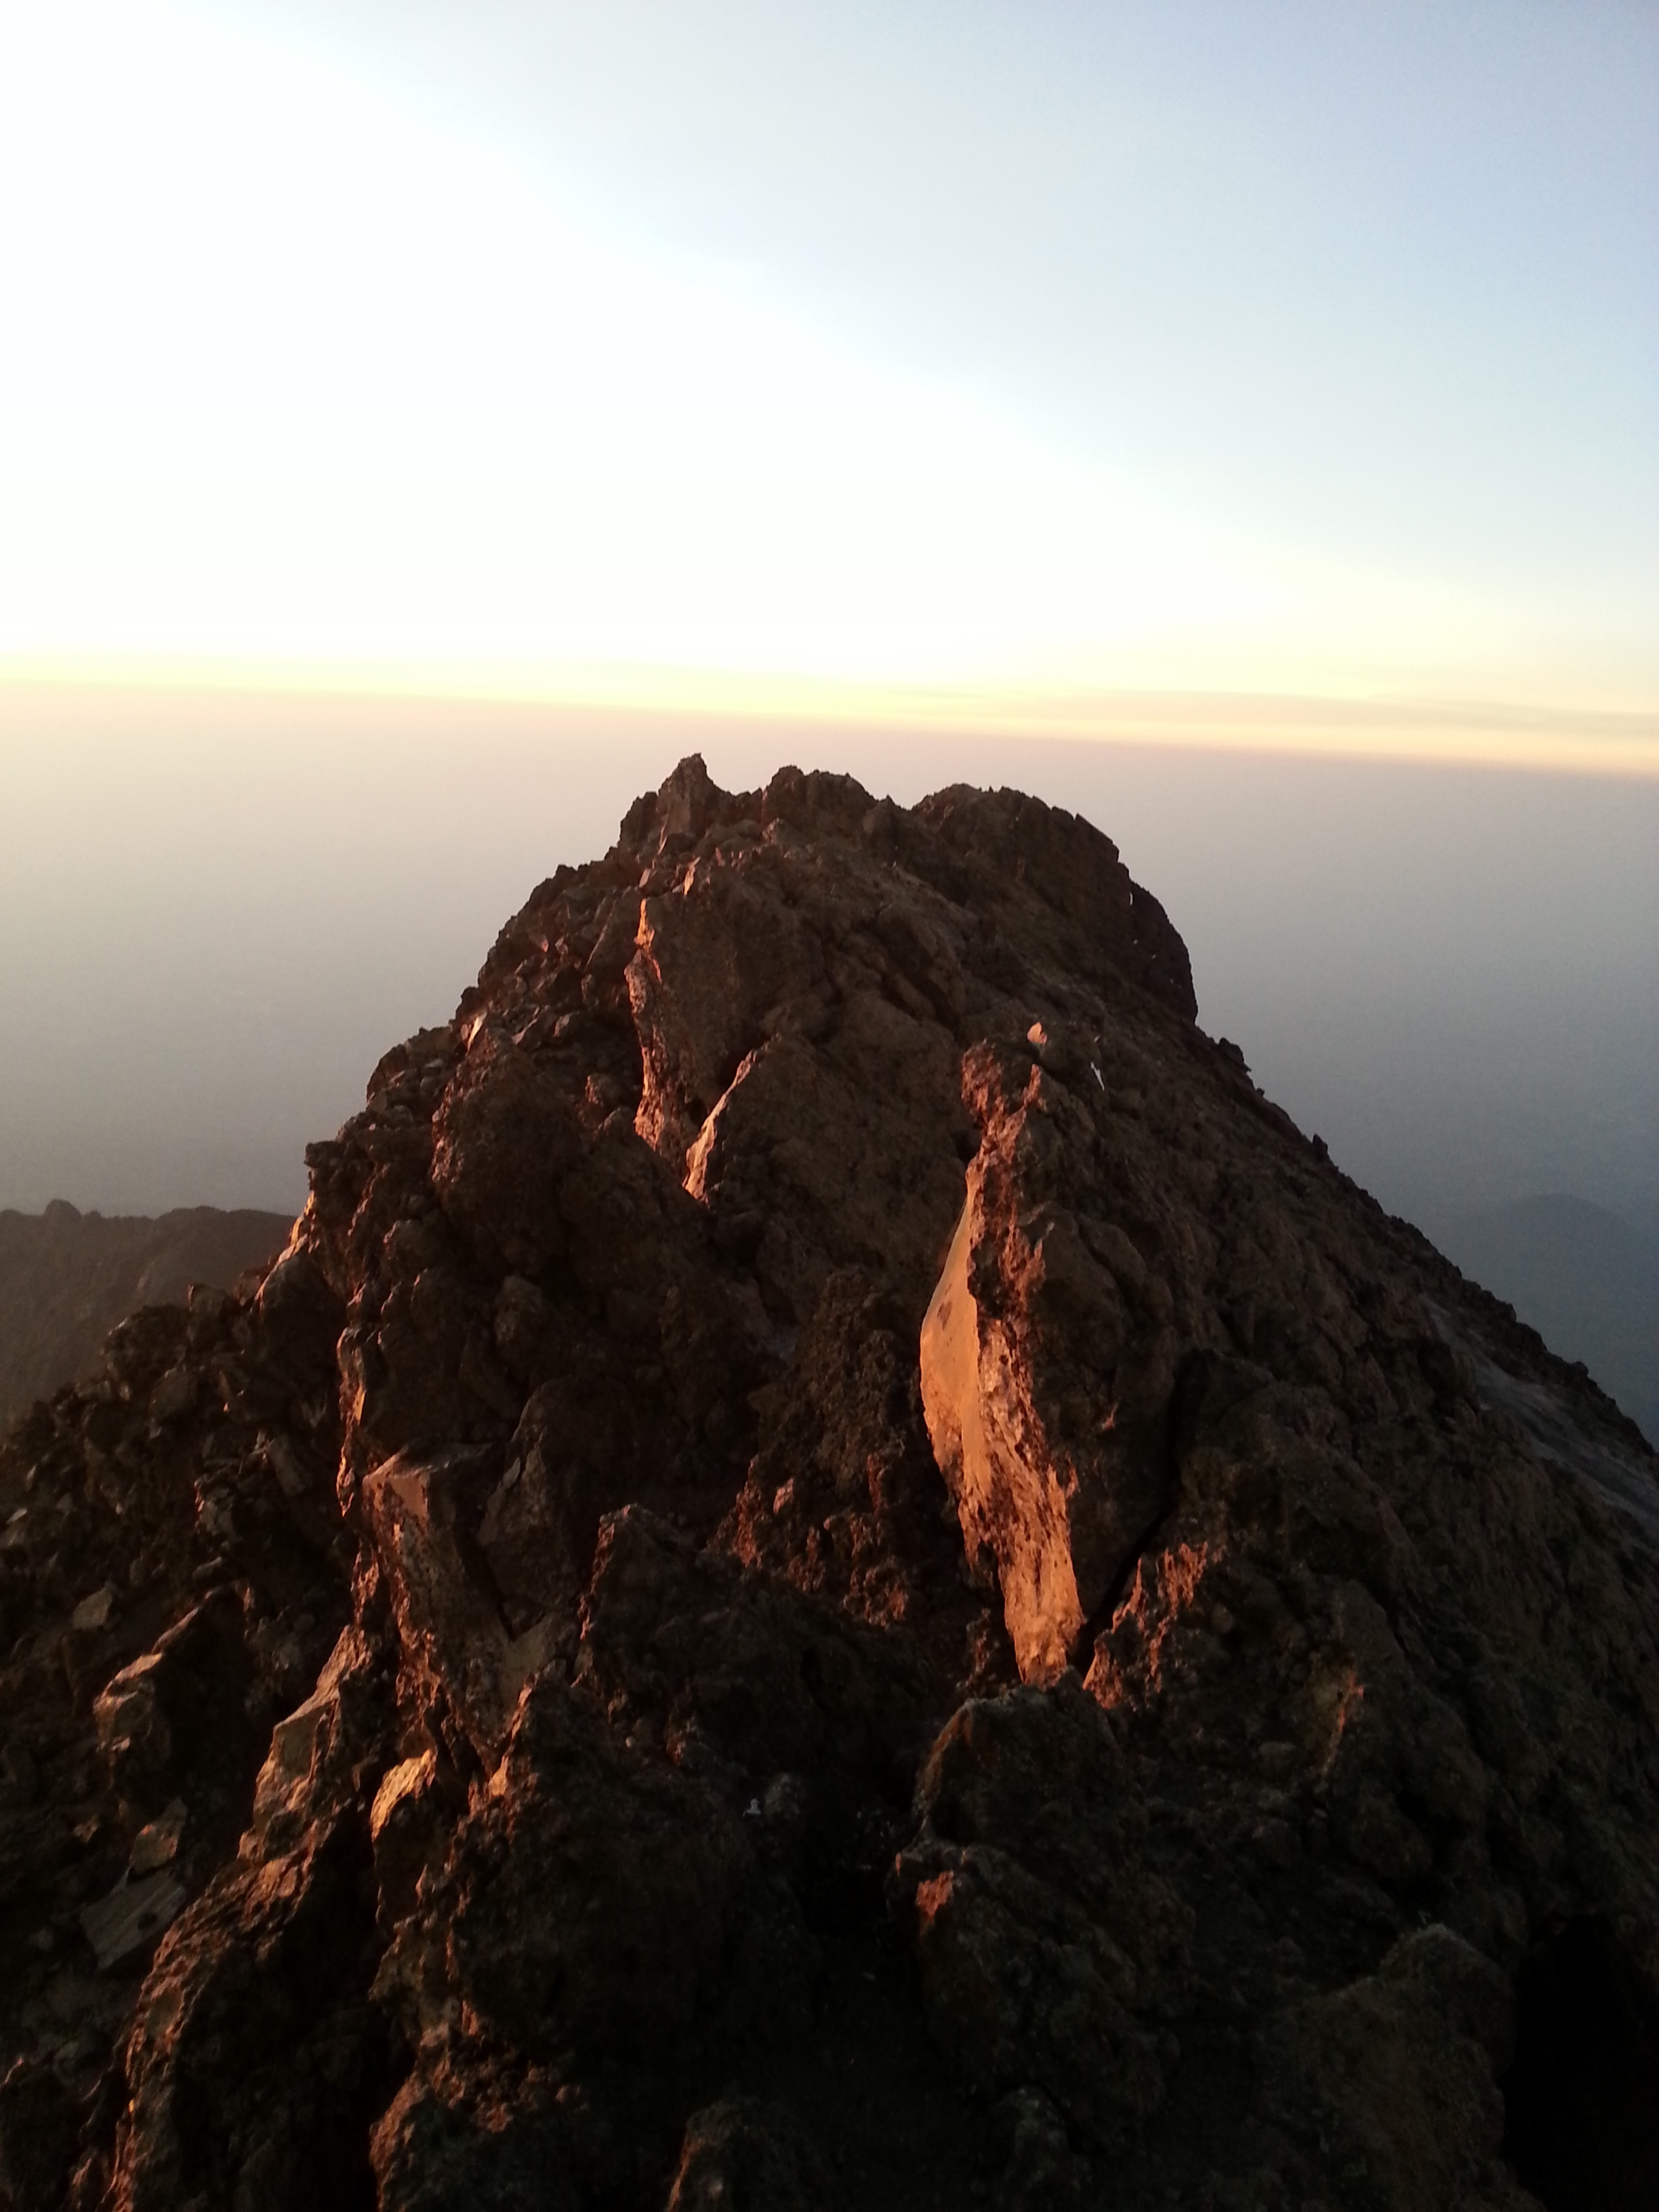 Sunrise at the Summit: Image Courtesy of Shannon Thomson